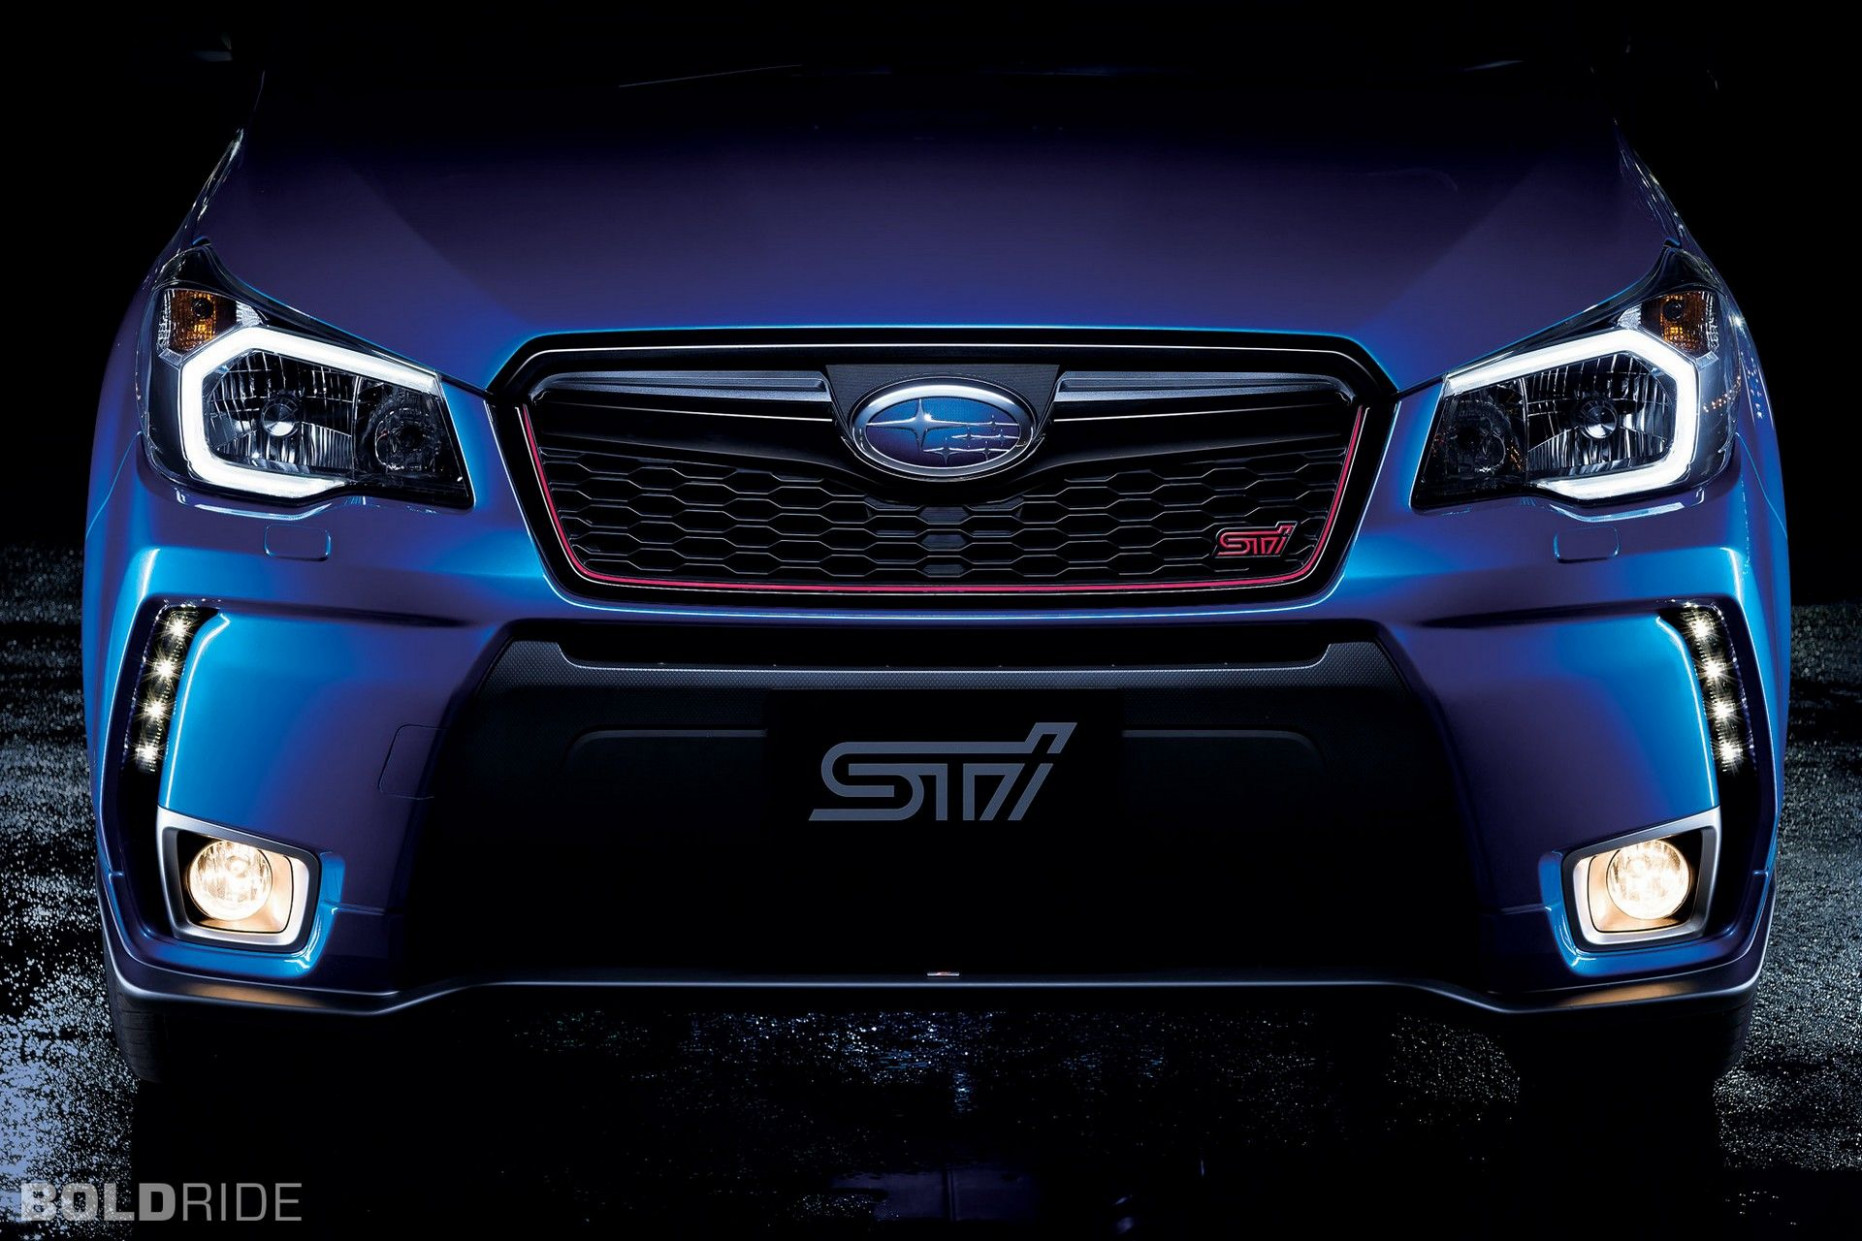 6 Subaru Forester STI Review (With images) | Subaru forester ...